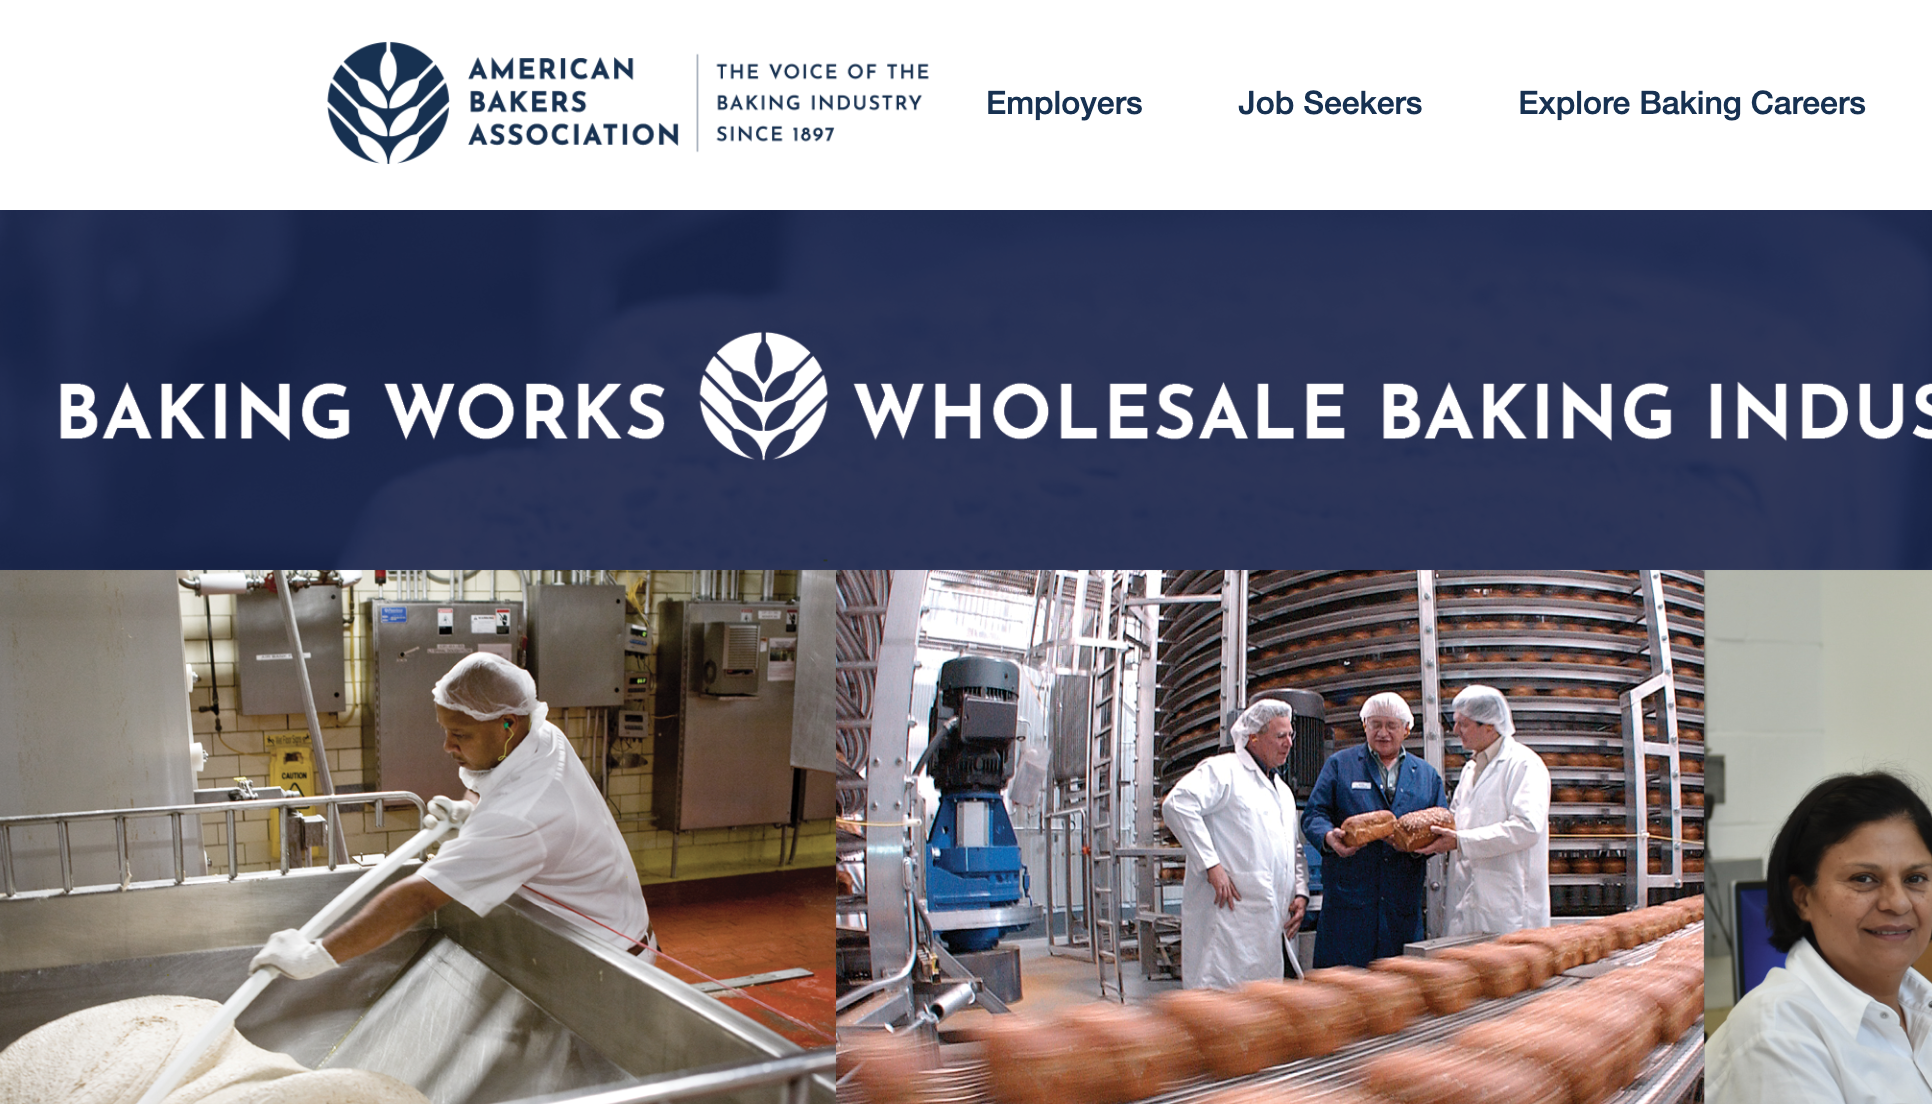 baking works american bakers association